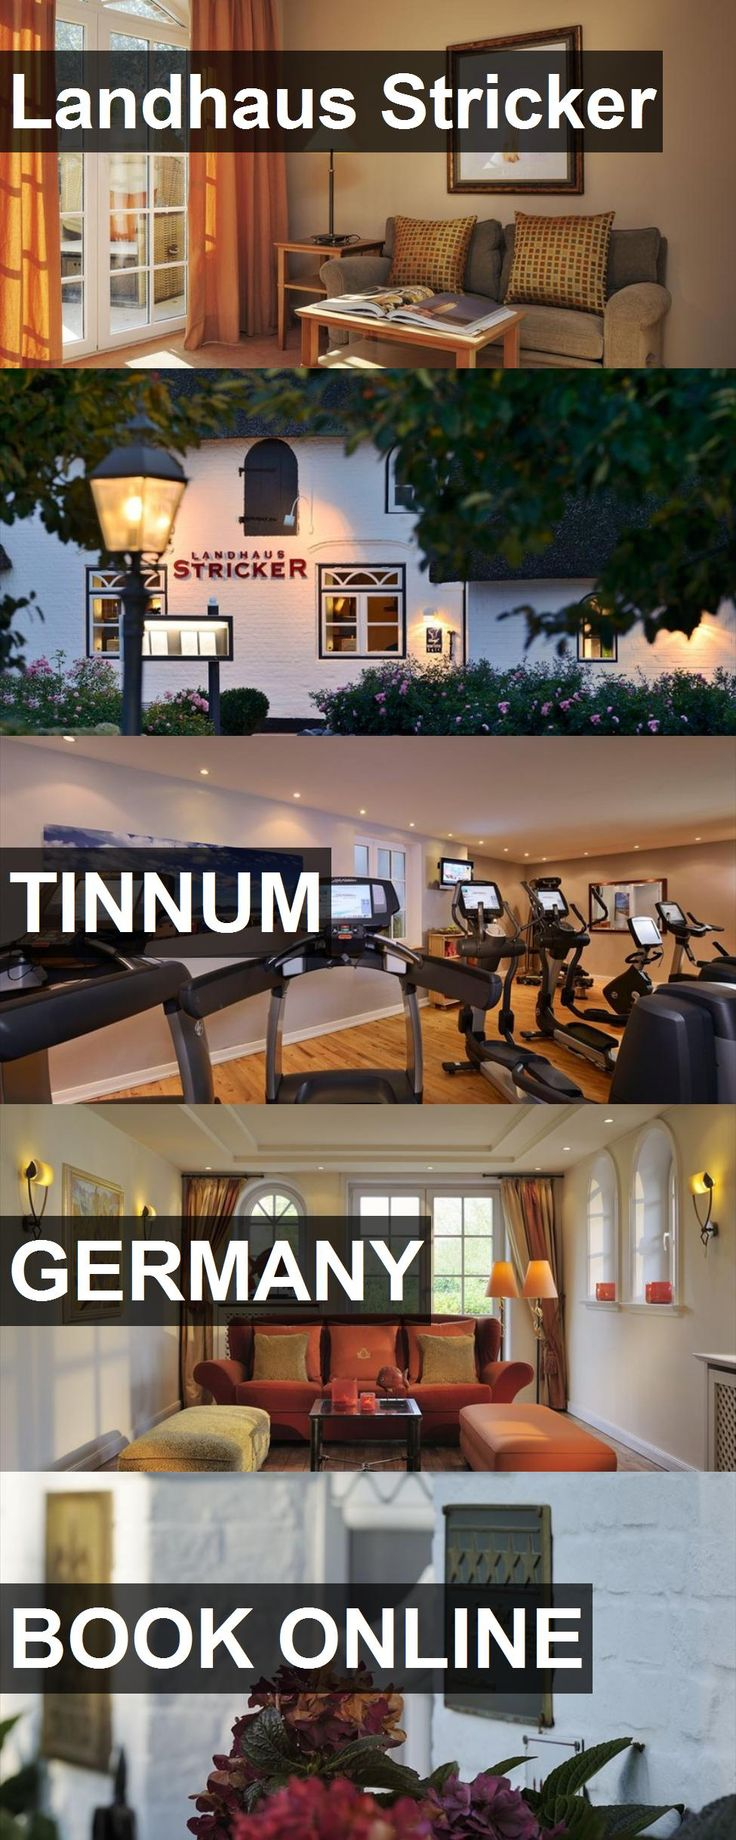 Hotel Landhaus Stricker in Tinnum, Germany. For more information, photos, reviews and best prices please follow the link. #Germany #Tinnum #travel #vacation #hotel